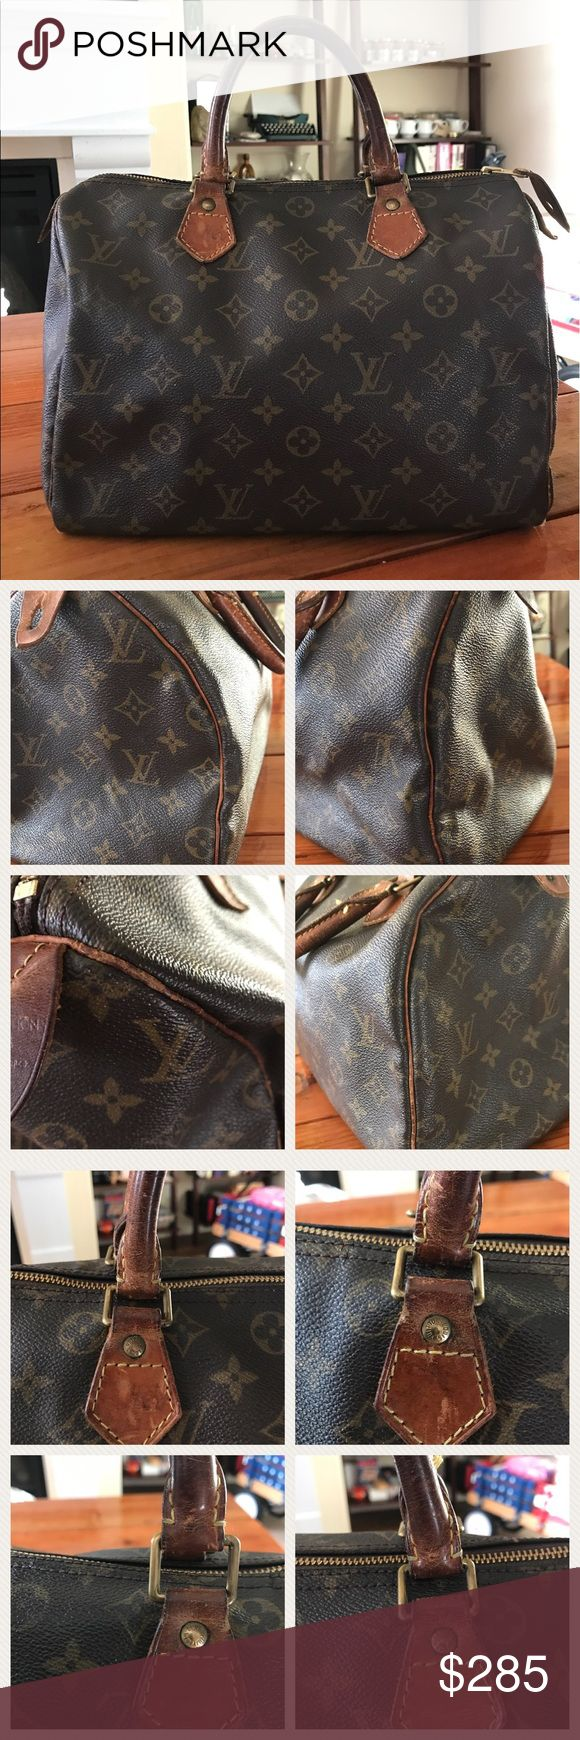 Authentic Louis Vuitton Speedy 30 Preloved Speedy 30. Please look at the photos closely. I took plenty of photos to show the condition of the bag. Hardwares have tarnished. No exposed piping but have some wear. There are tears on each corners and a scuff mark on the bottom of the bag. The interior has some marks, stains and ripped seam. The zipper works well on this purse. Priced to sell and thanks for looking! Date code is SP0956. Louis Vuitton Bags Satchels